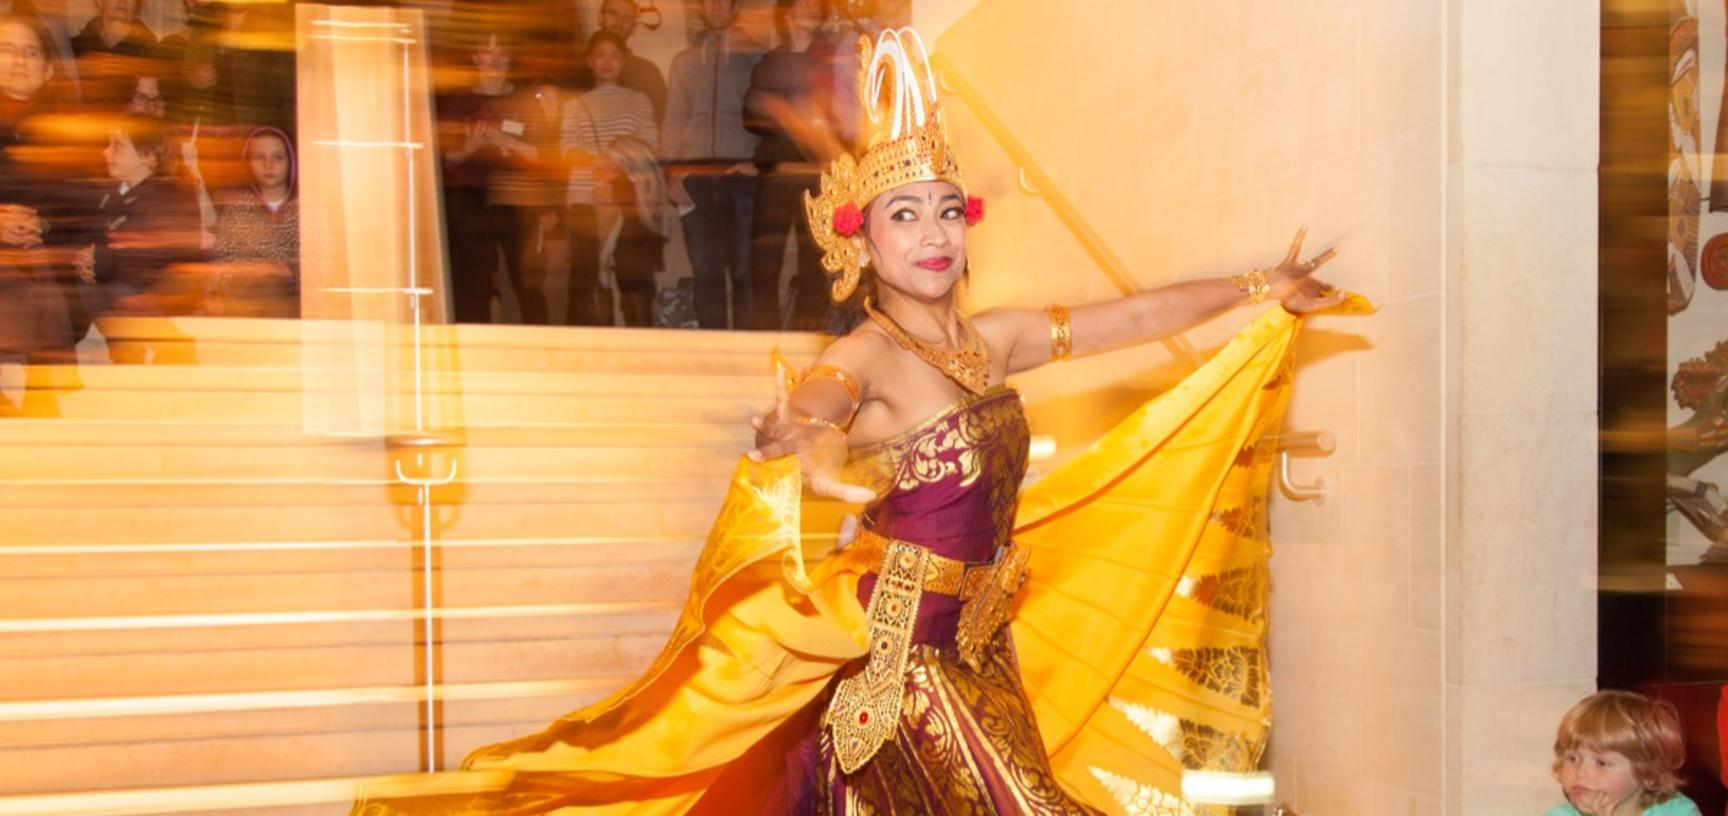 Java & Bali AfterHours, 2015. This was one of our most successful AfterHours evening events attracting six hundred visitors, including many from the Indonesian community and even the Ambassador of Indonesia to the UK.